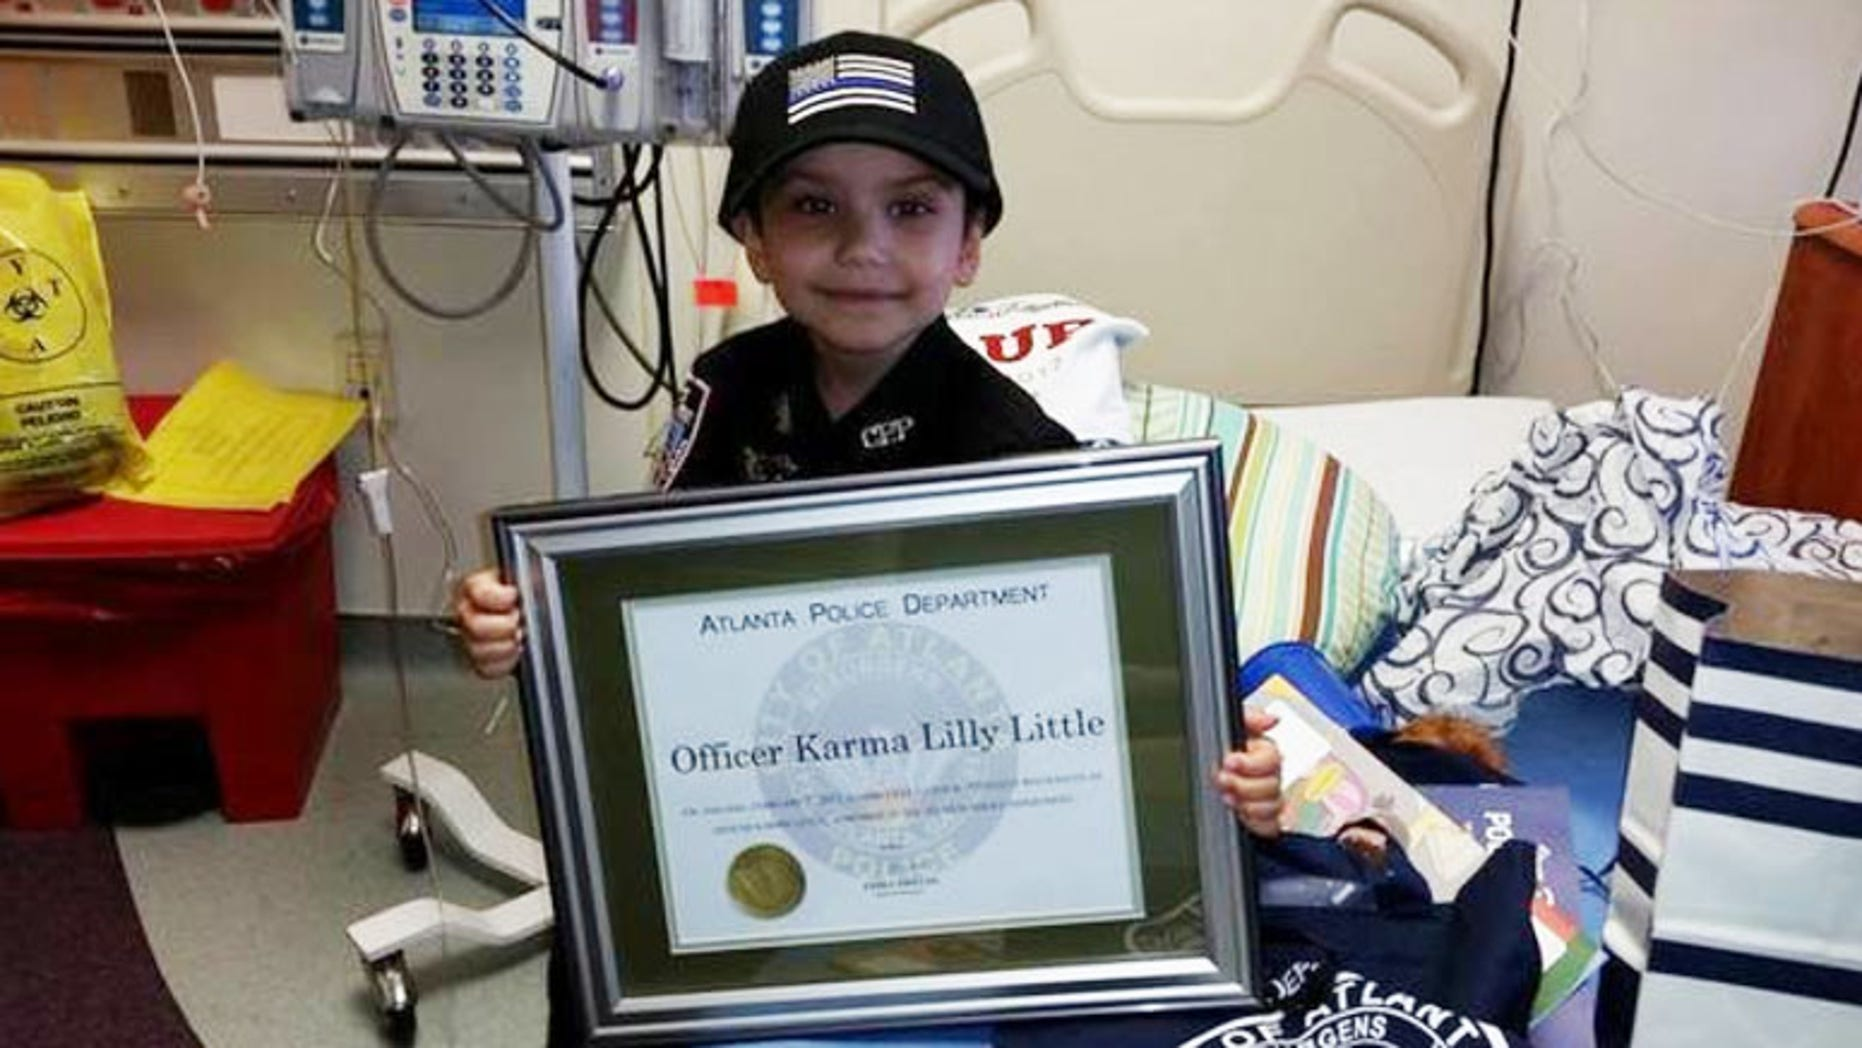 Karma Little died after a four-year battle with neuroblastoma.